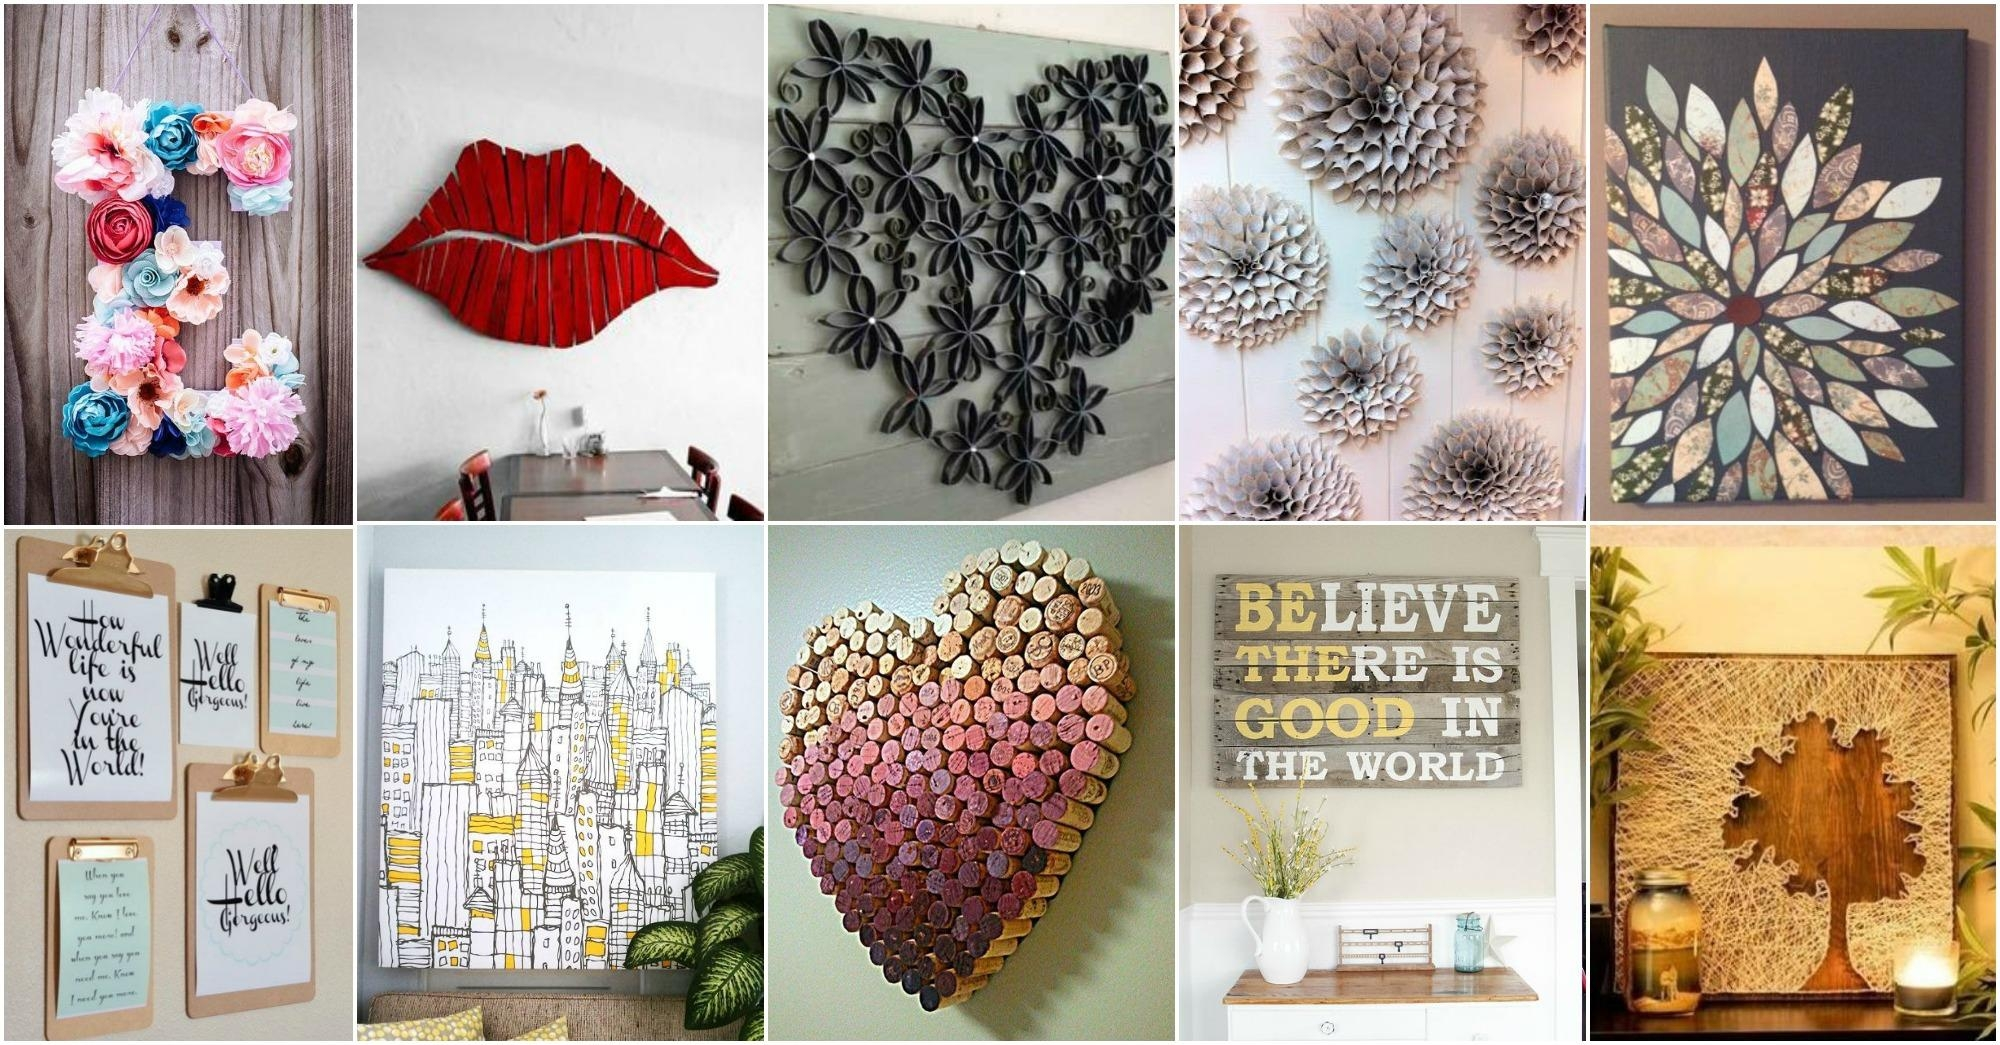 Wall Art: Awesome Canvas Wall Art Ideas Diy Canvas Art Ideas, Cool Pertaining To Pinterest Diy Wall Art (Image 20 of 20)